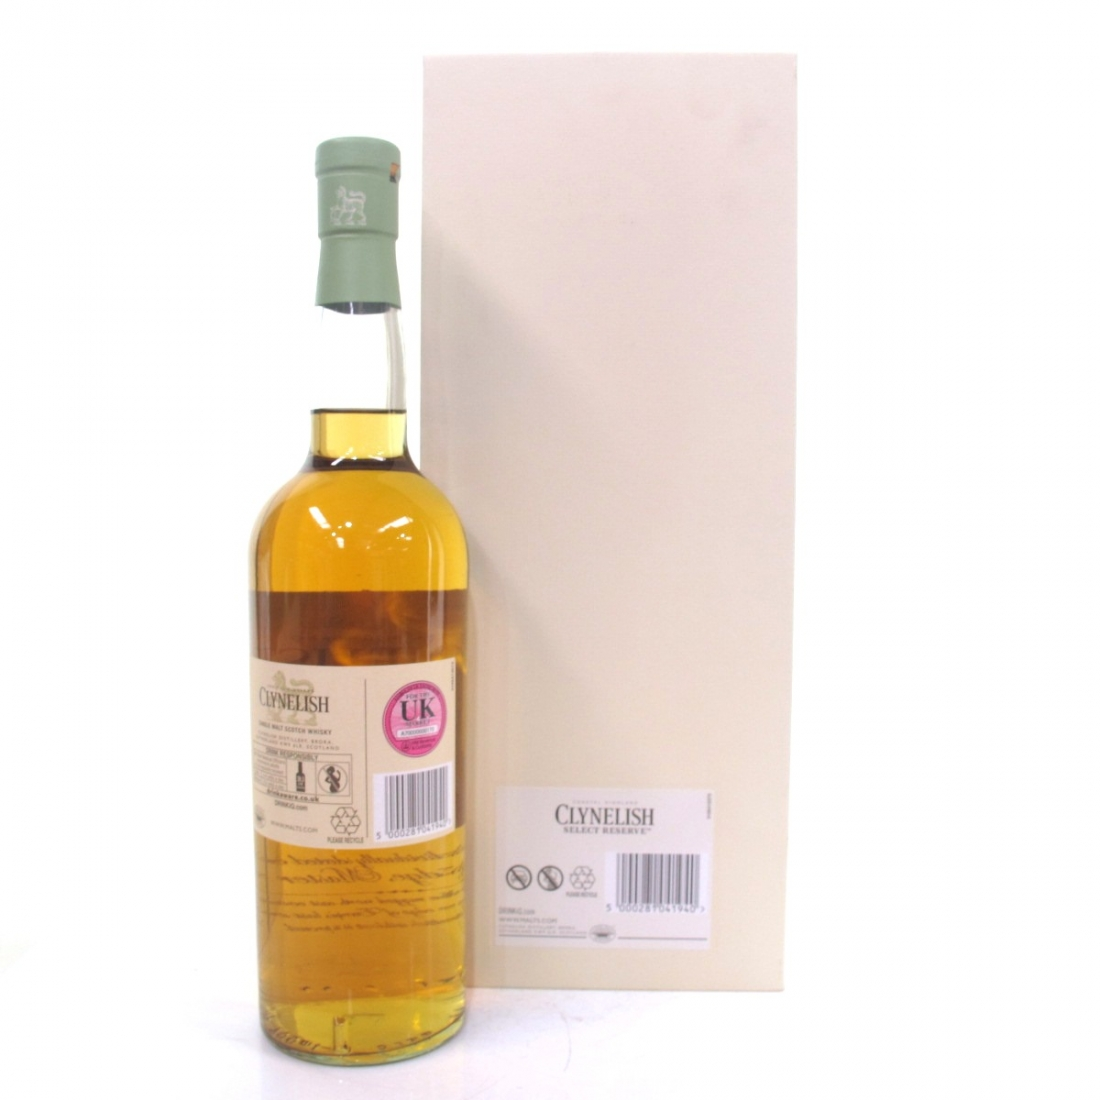 Clynelish Limited Release 2015 2nd Edtion